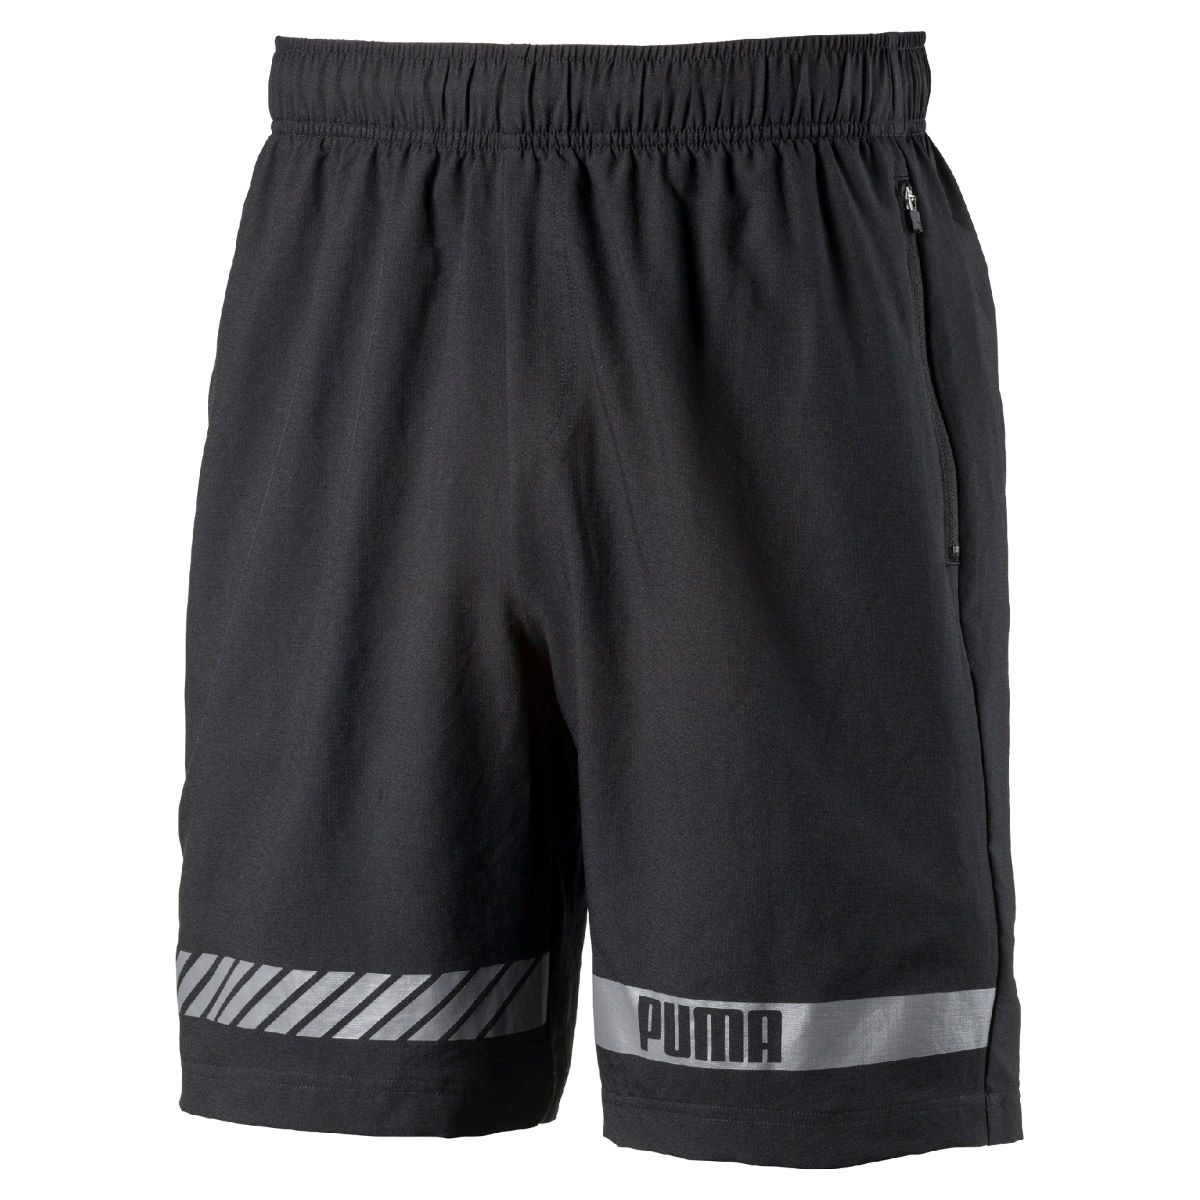 Short de gym Femme Puma Active Tec (tissé) - S Puma Black-Quiet Sha